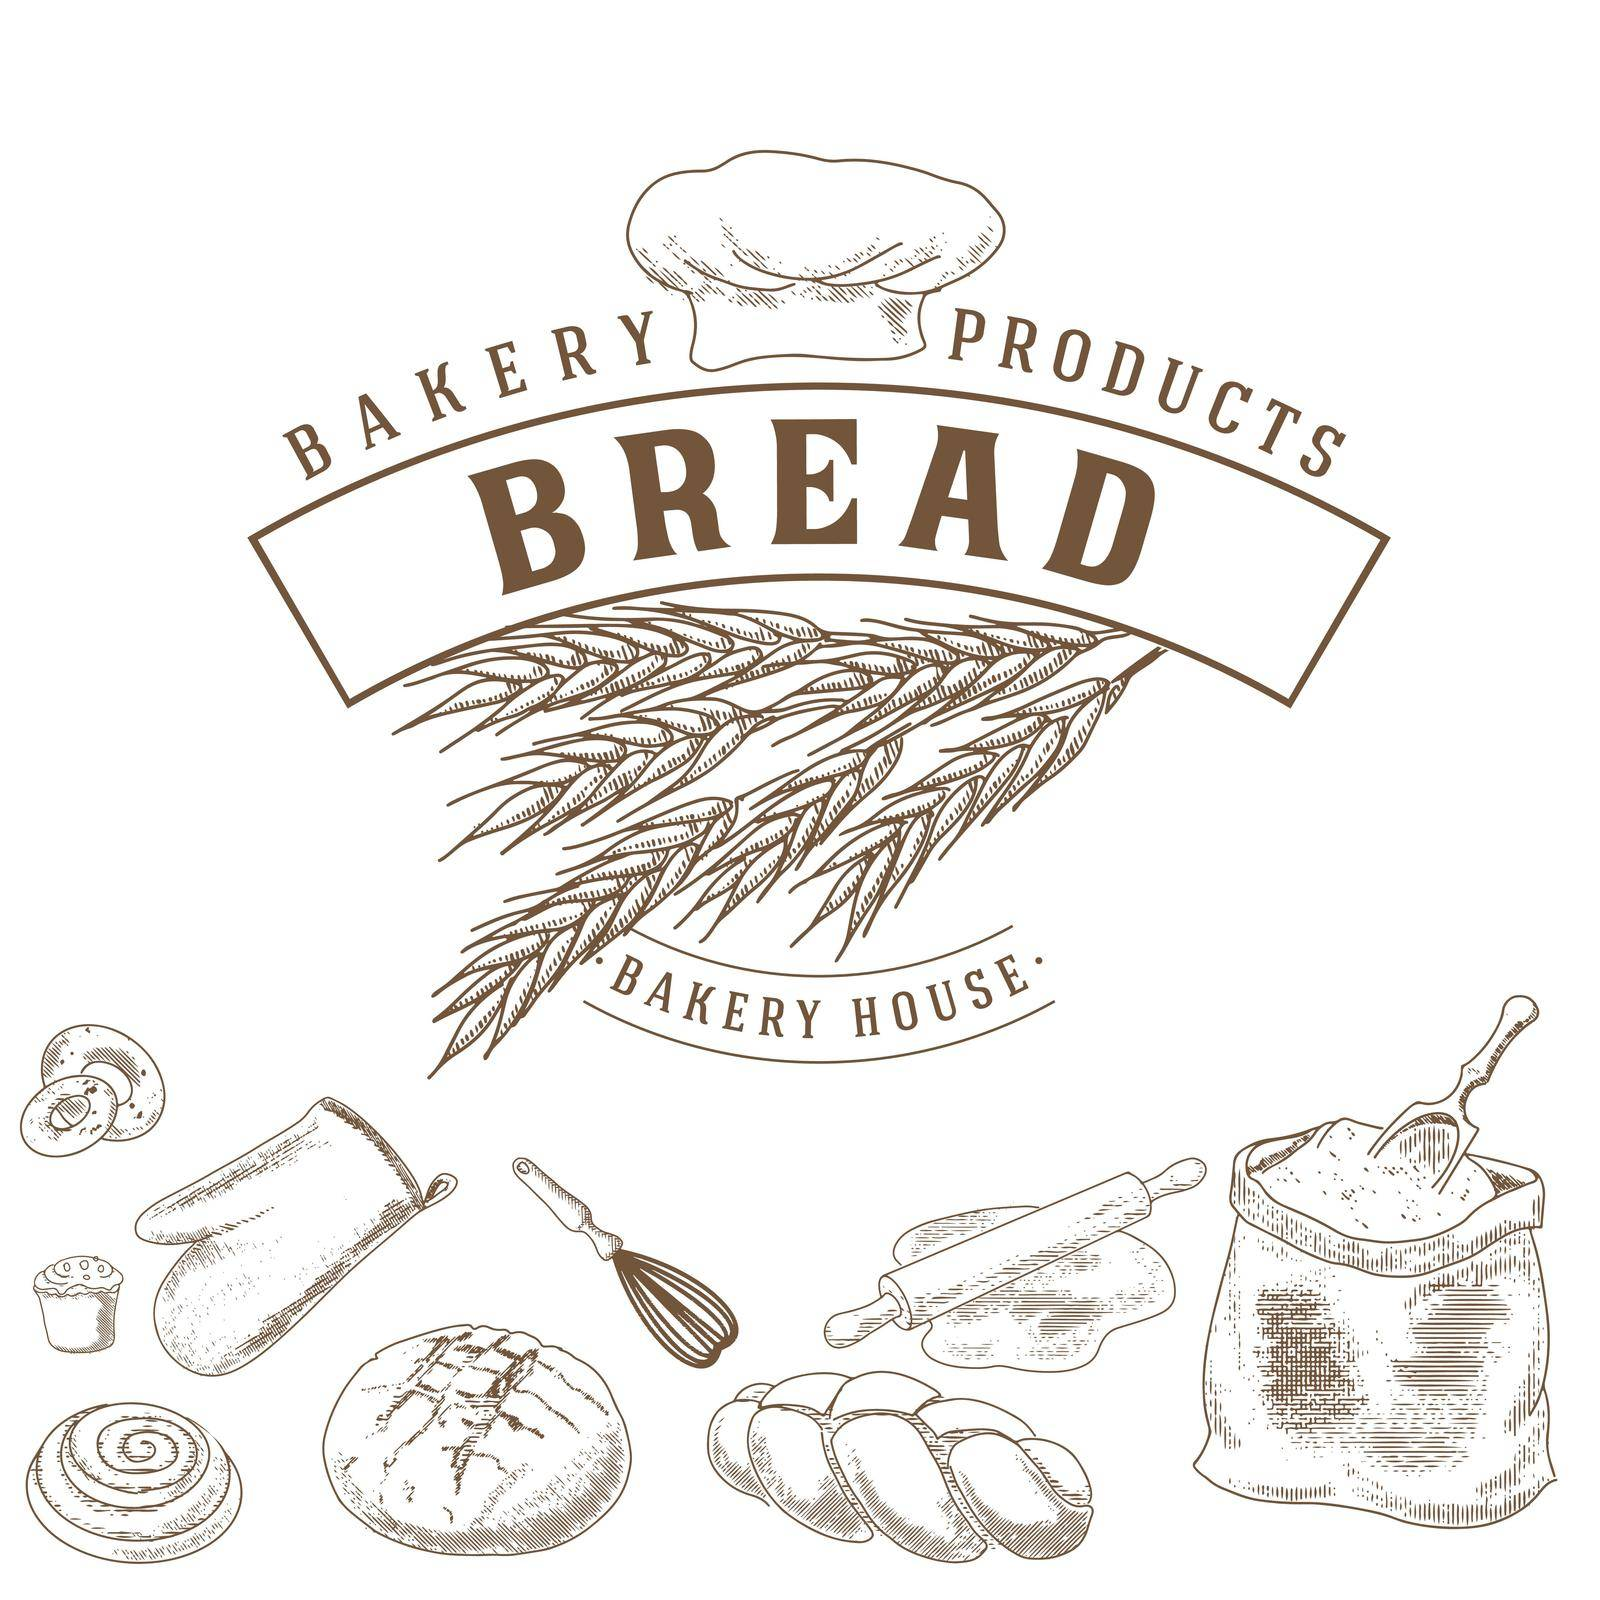 A collection of bread and bread products in an engraved vintage style. Emblem, bakery icon